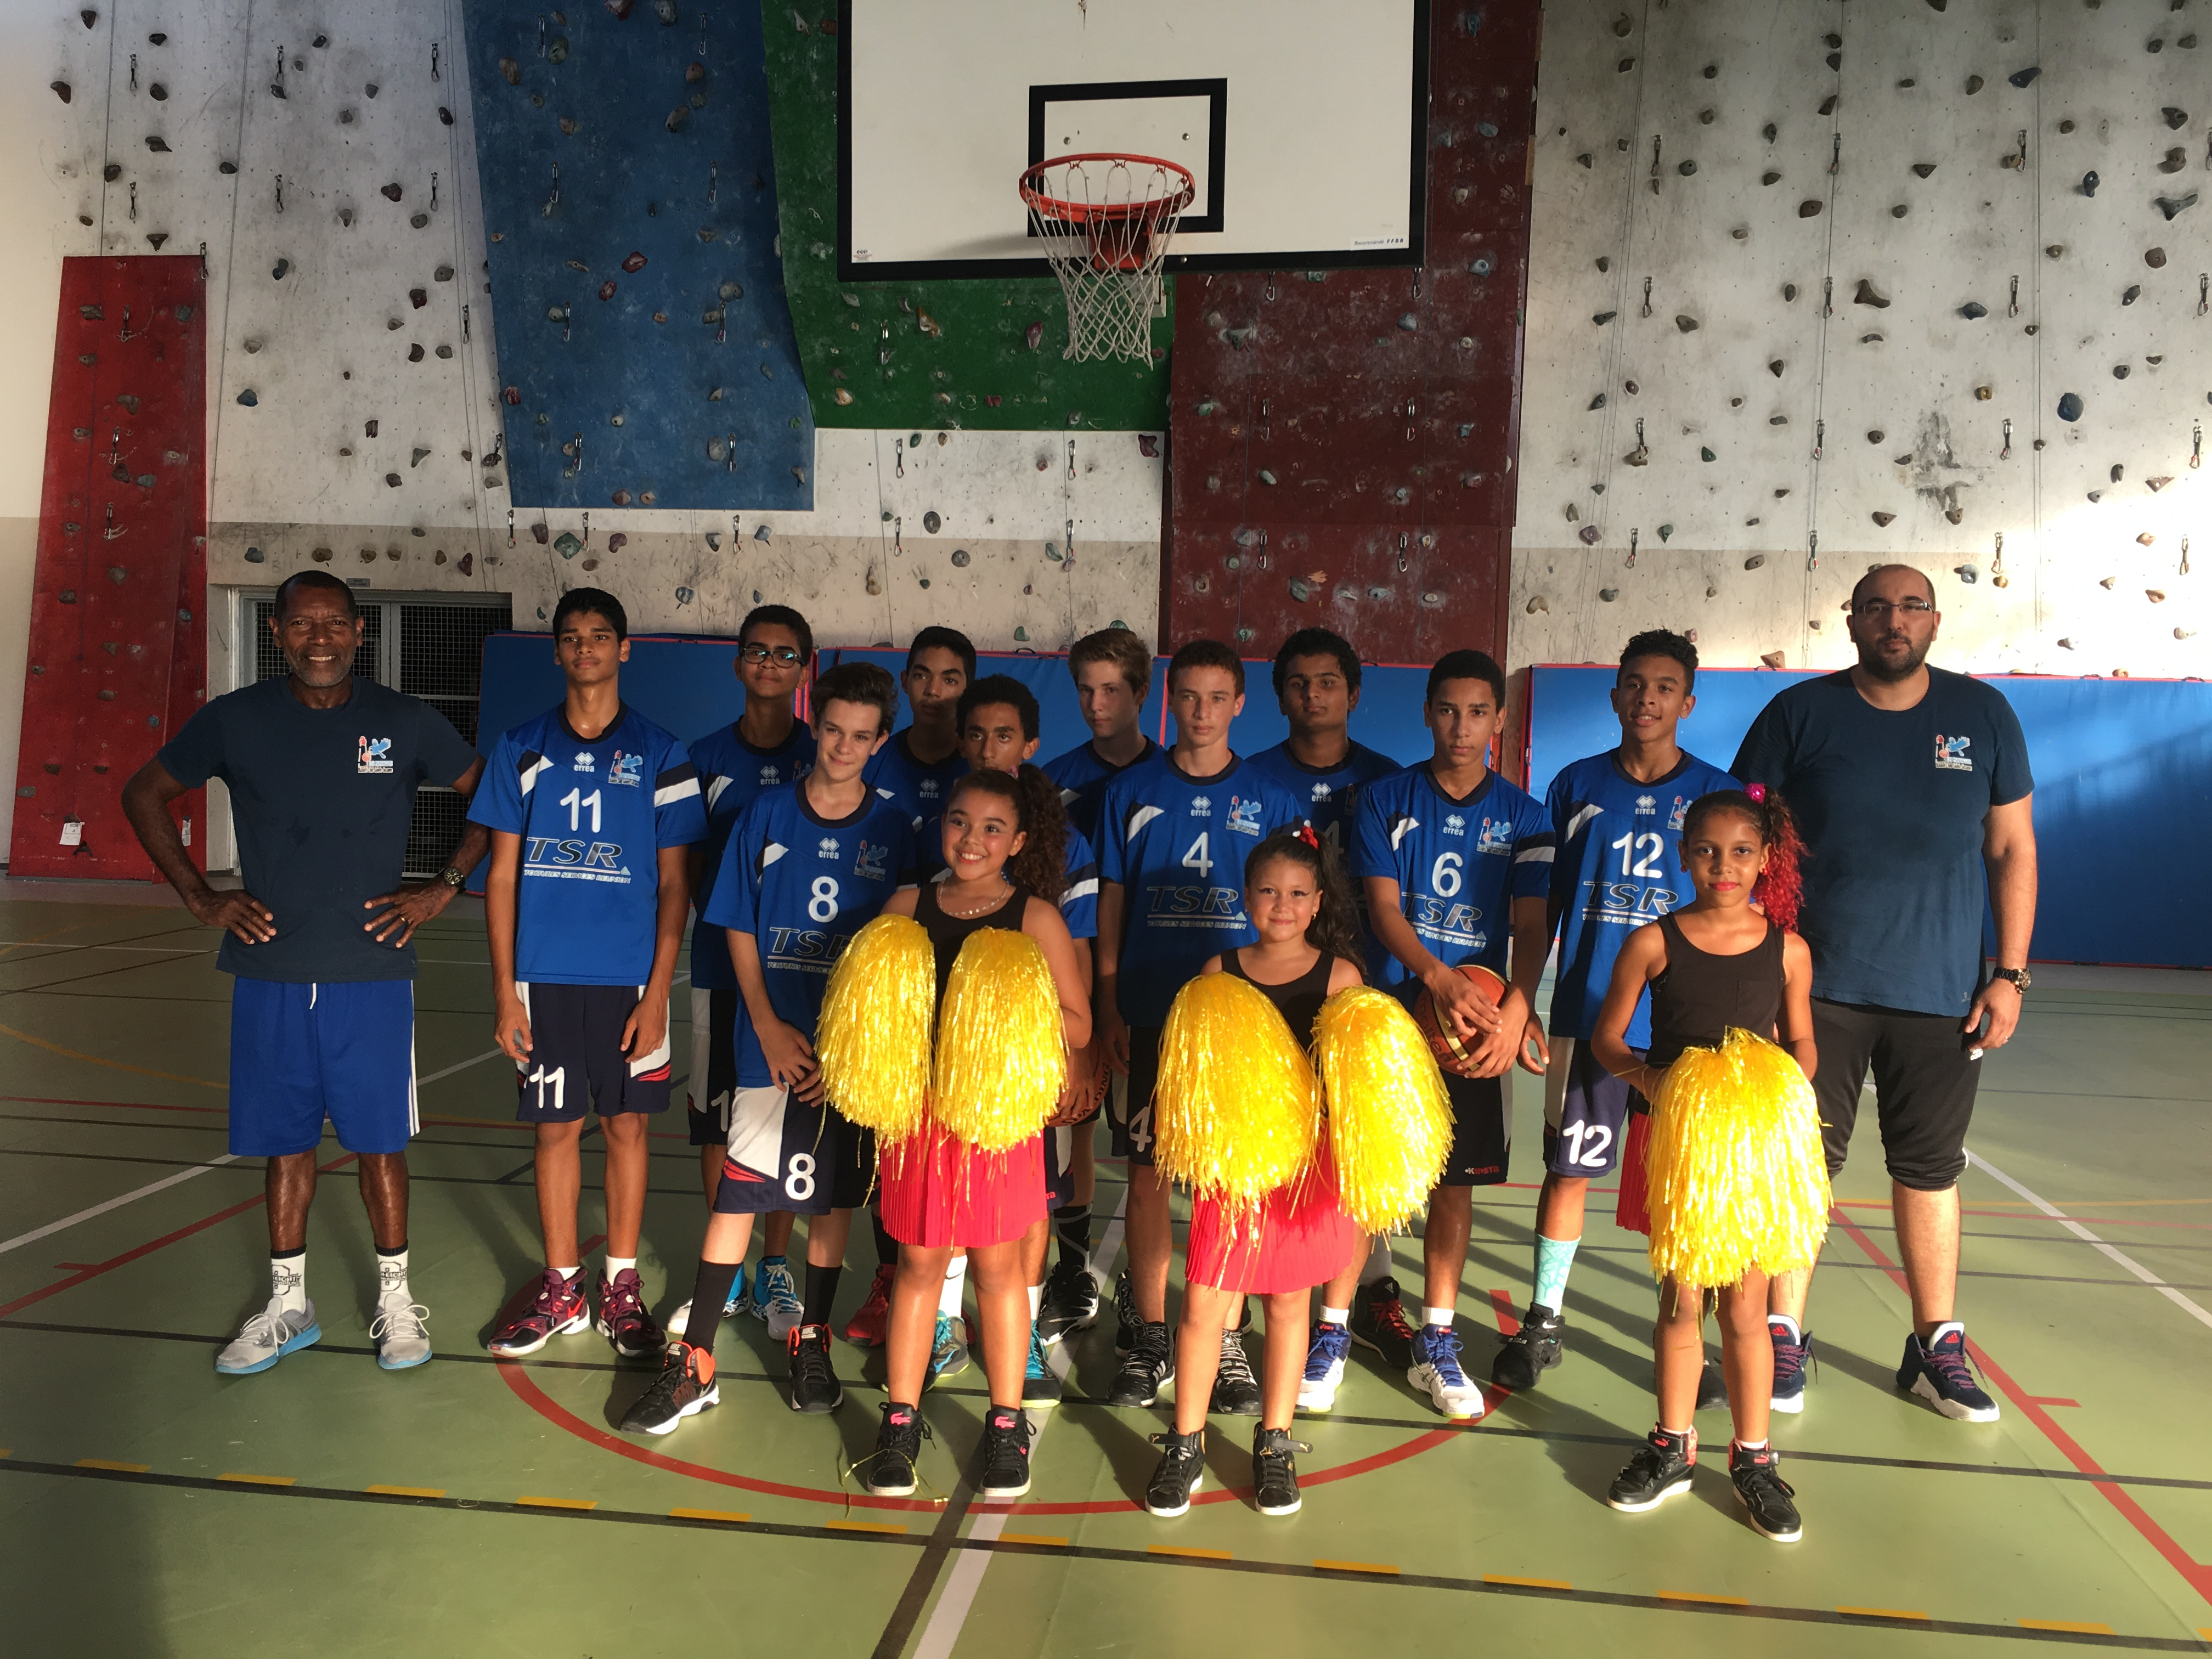 A Sainte-Suzanne: Le club de Basket Papangue en route vers la finale